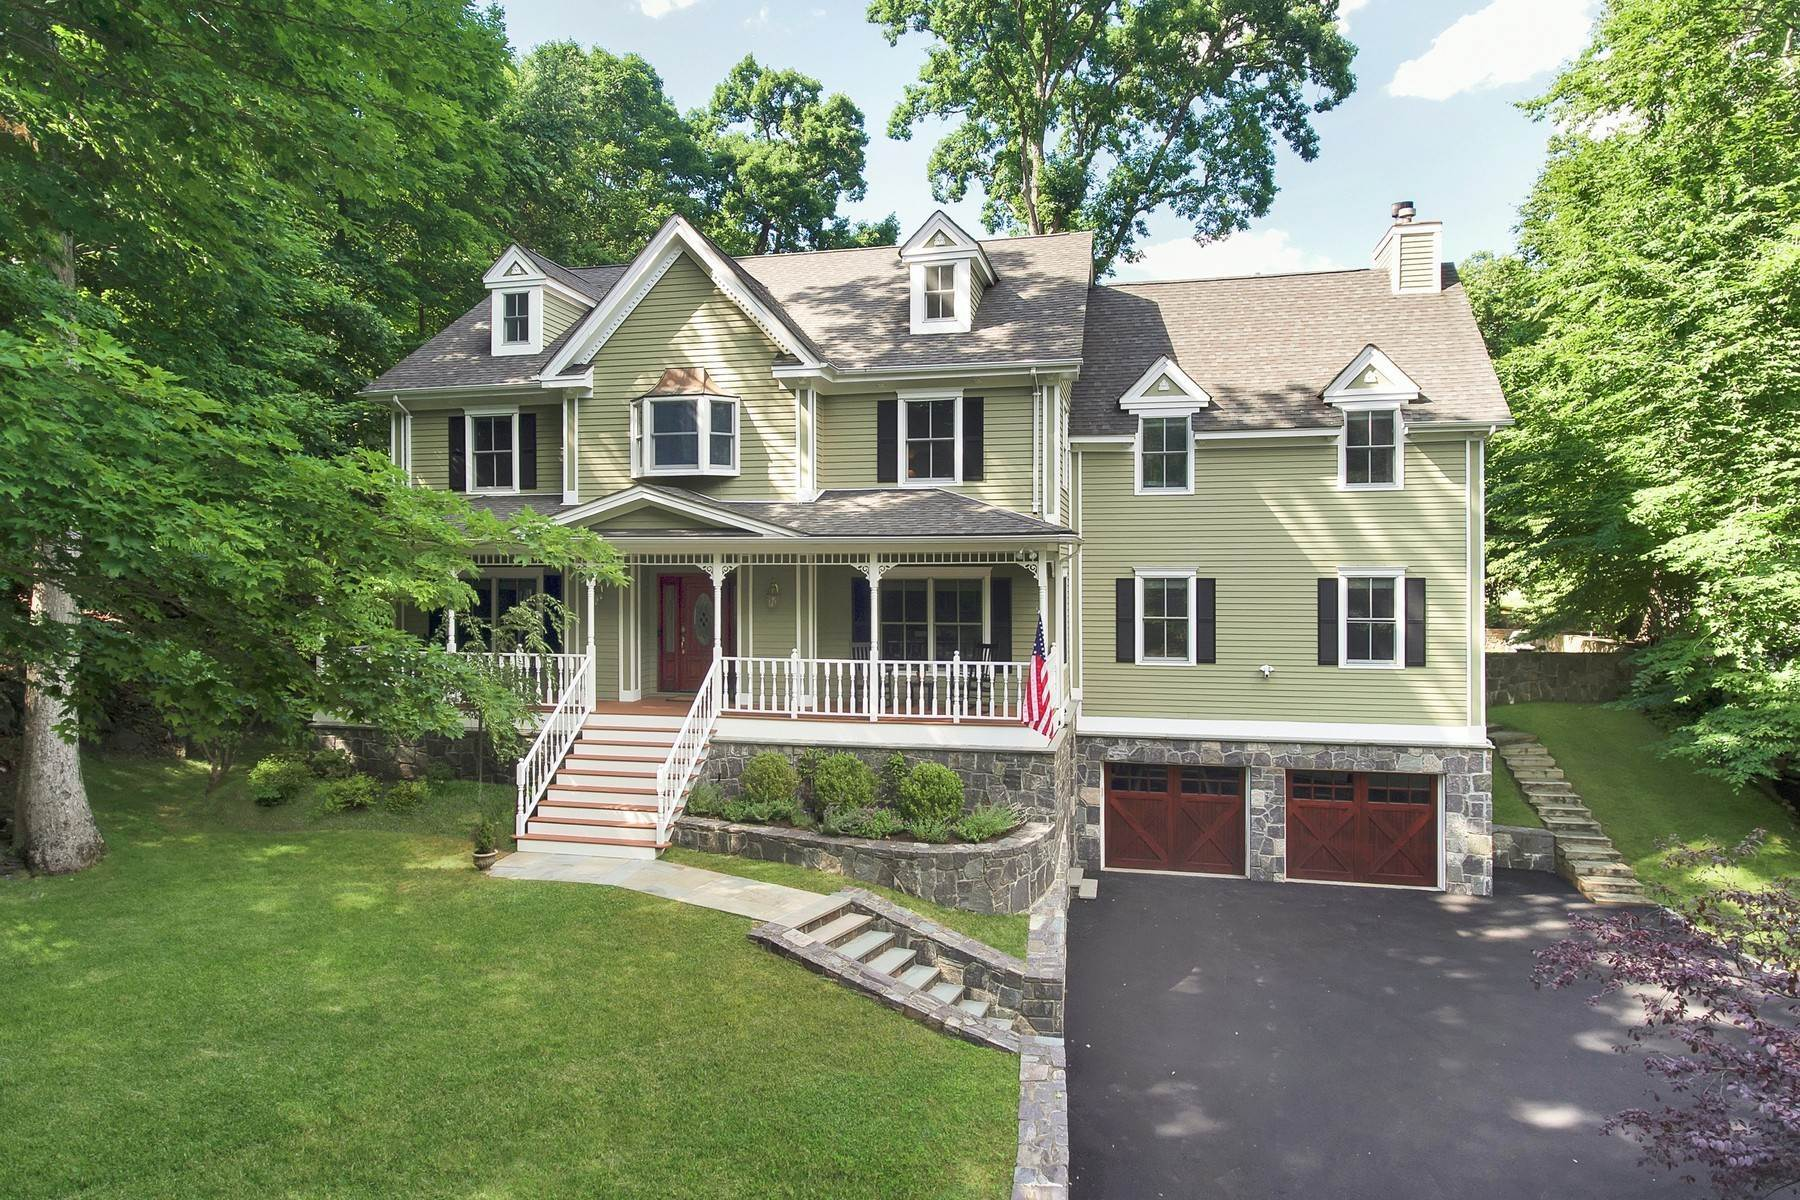 Single Family Homes for Sale at Victorian Inspired 1 Birch Court Croton On Hudson, New York 10520 United States